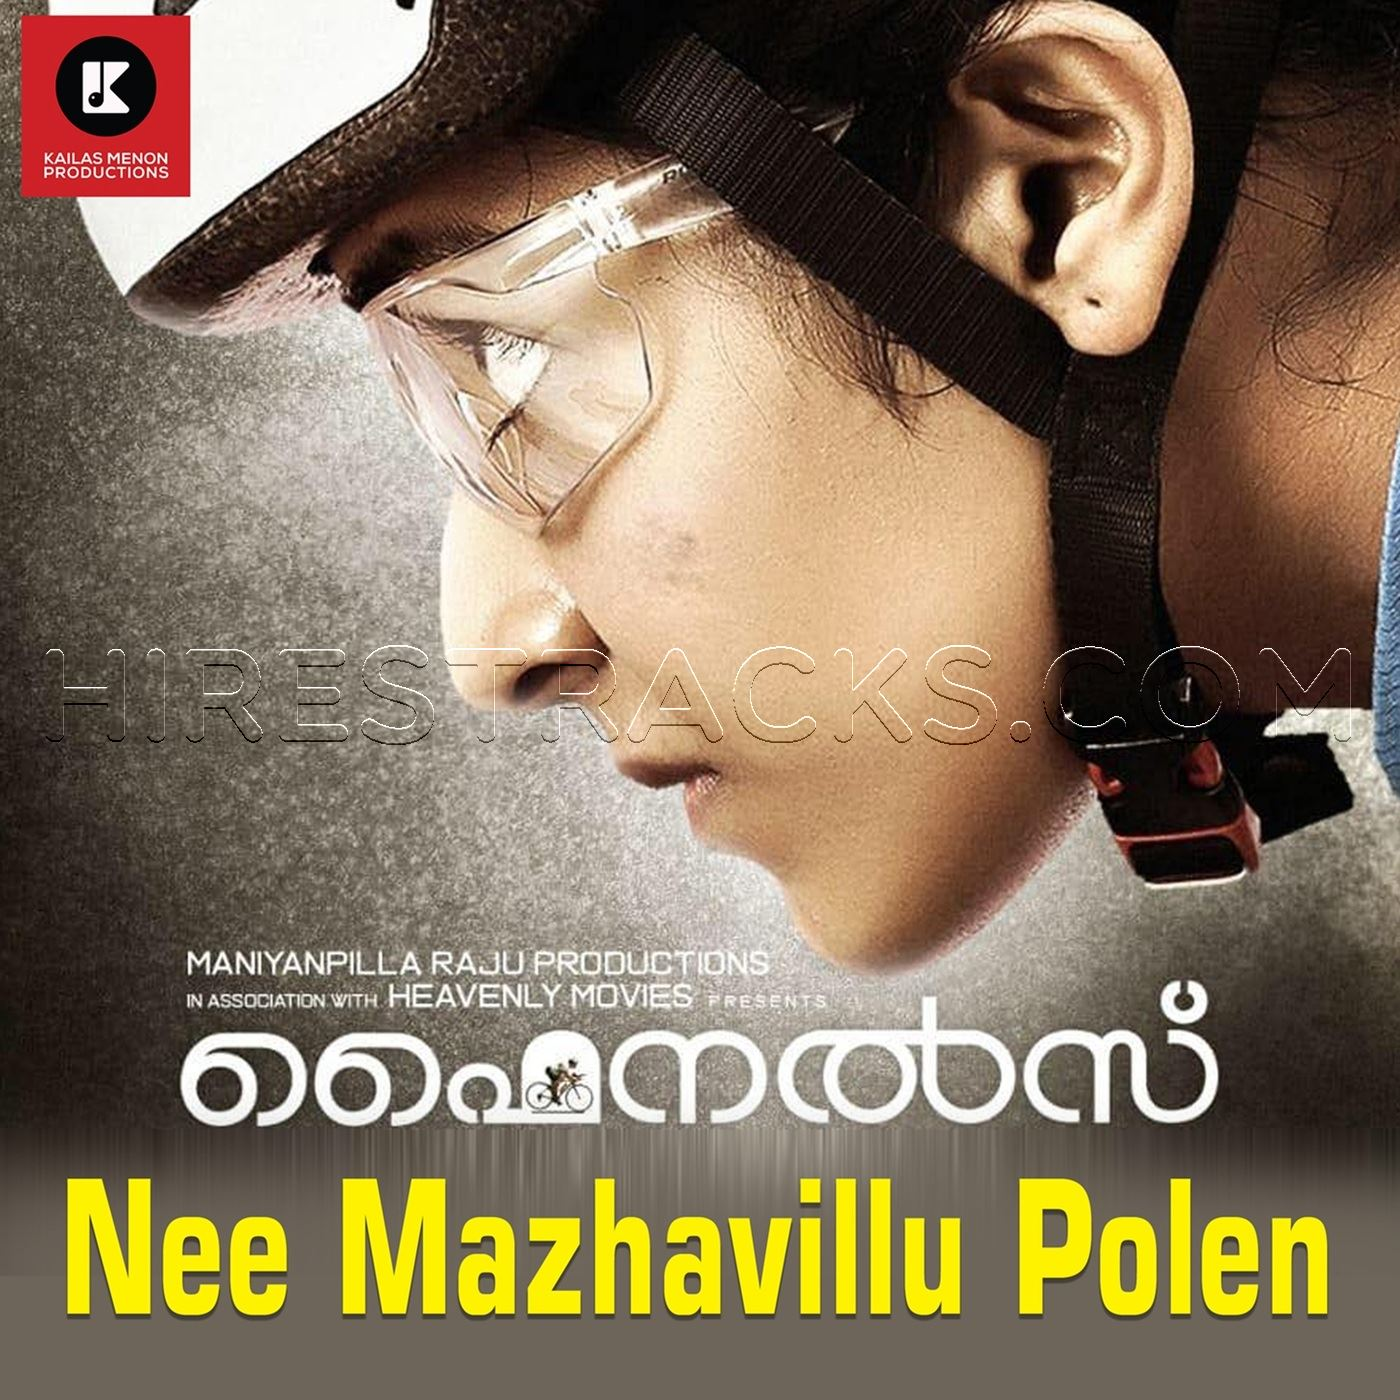 Nee Mazhavillu Polen (From Finals) (2019)